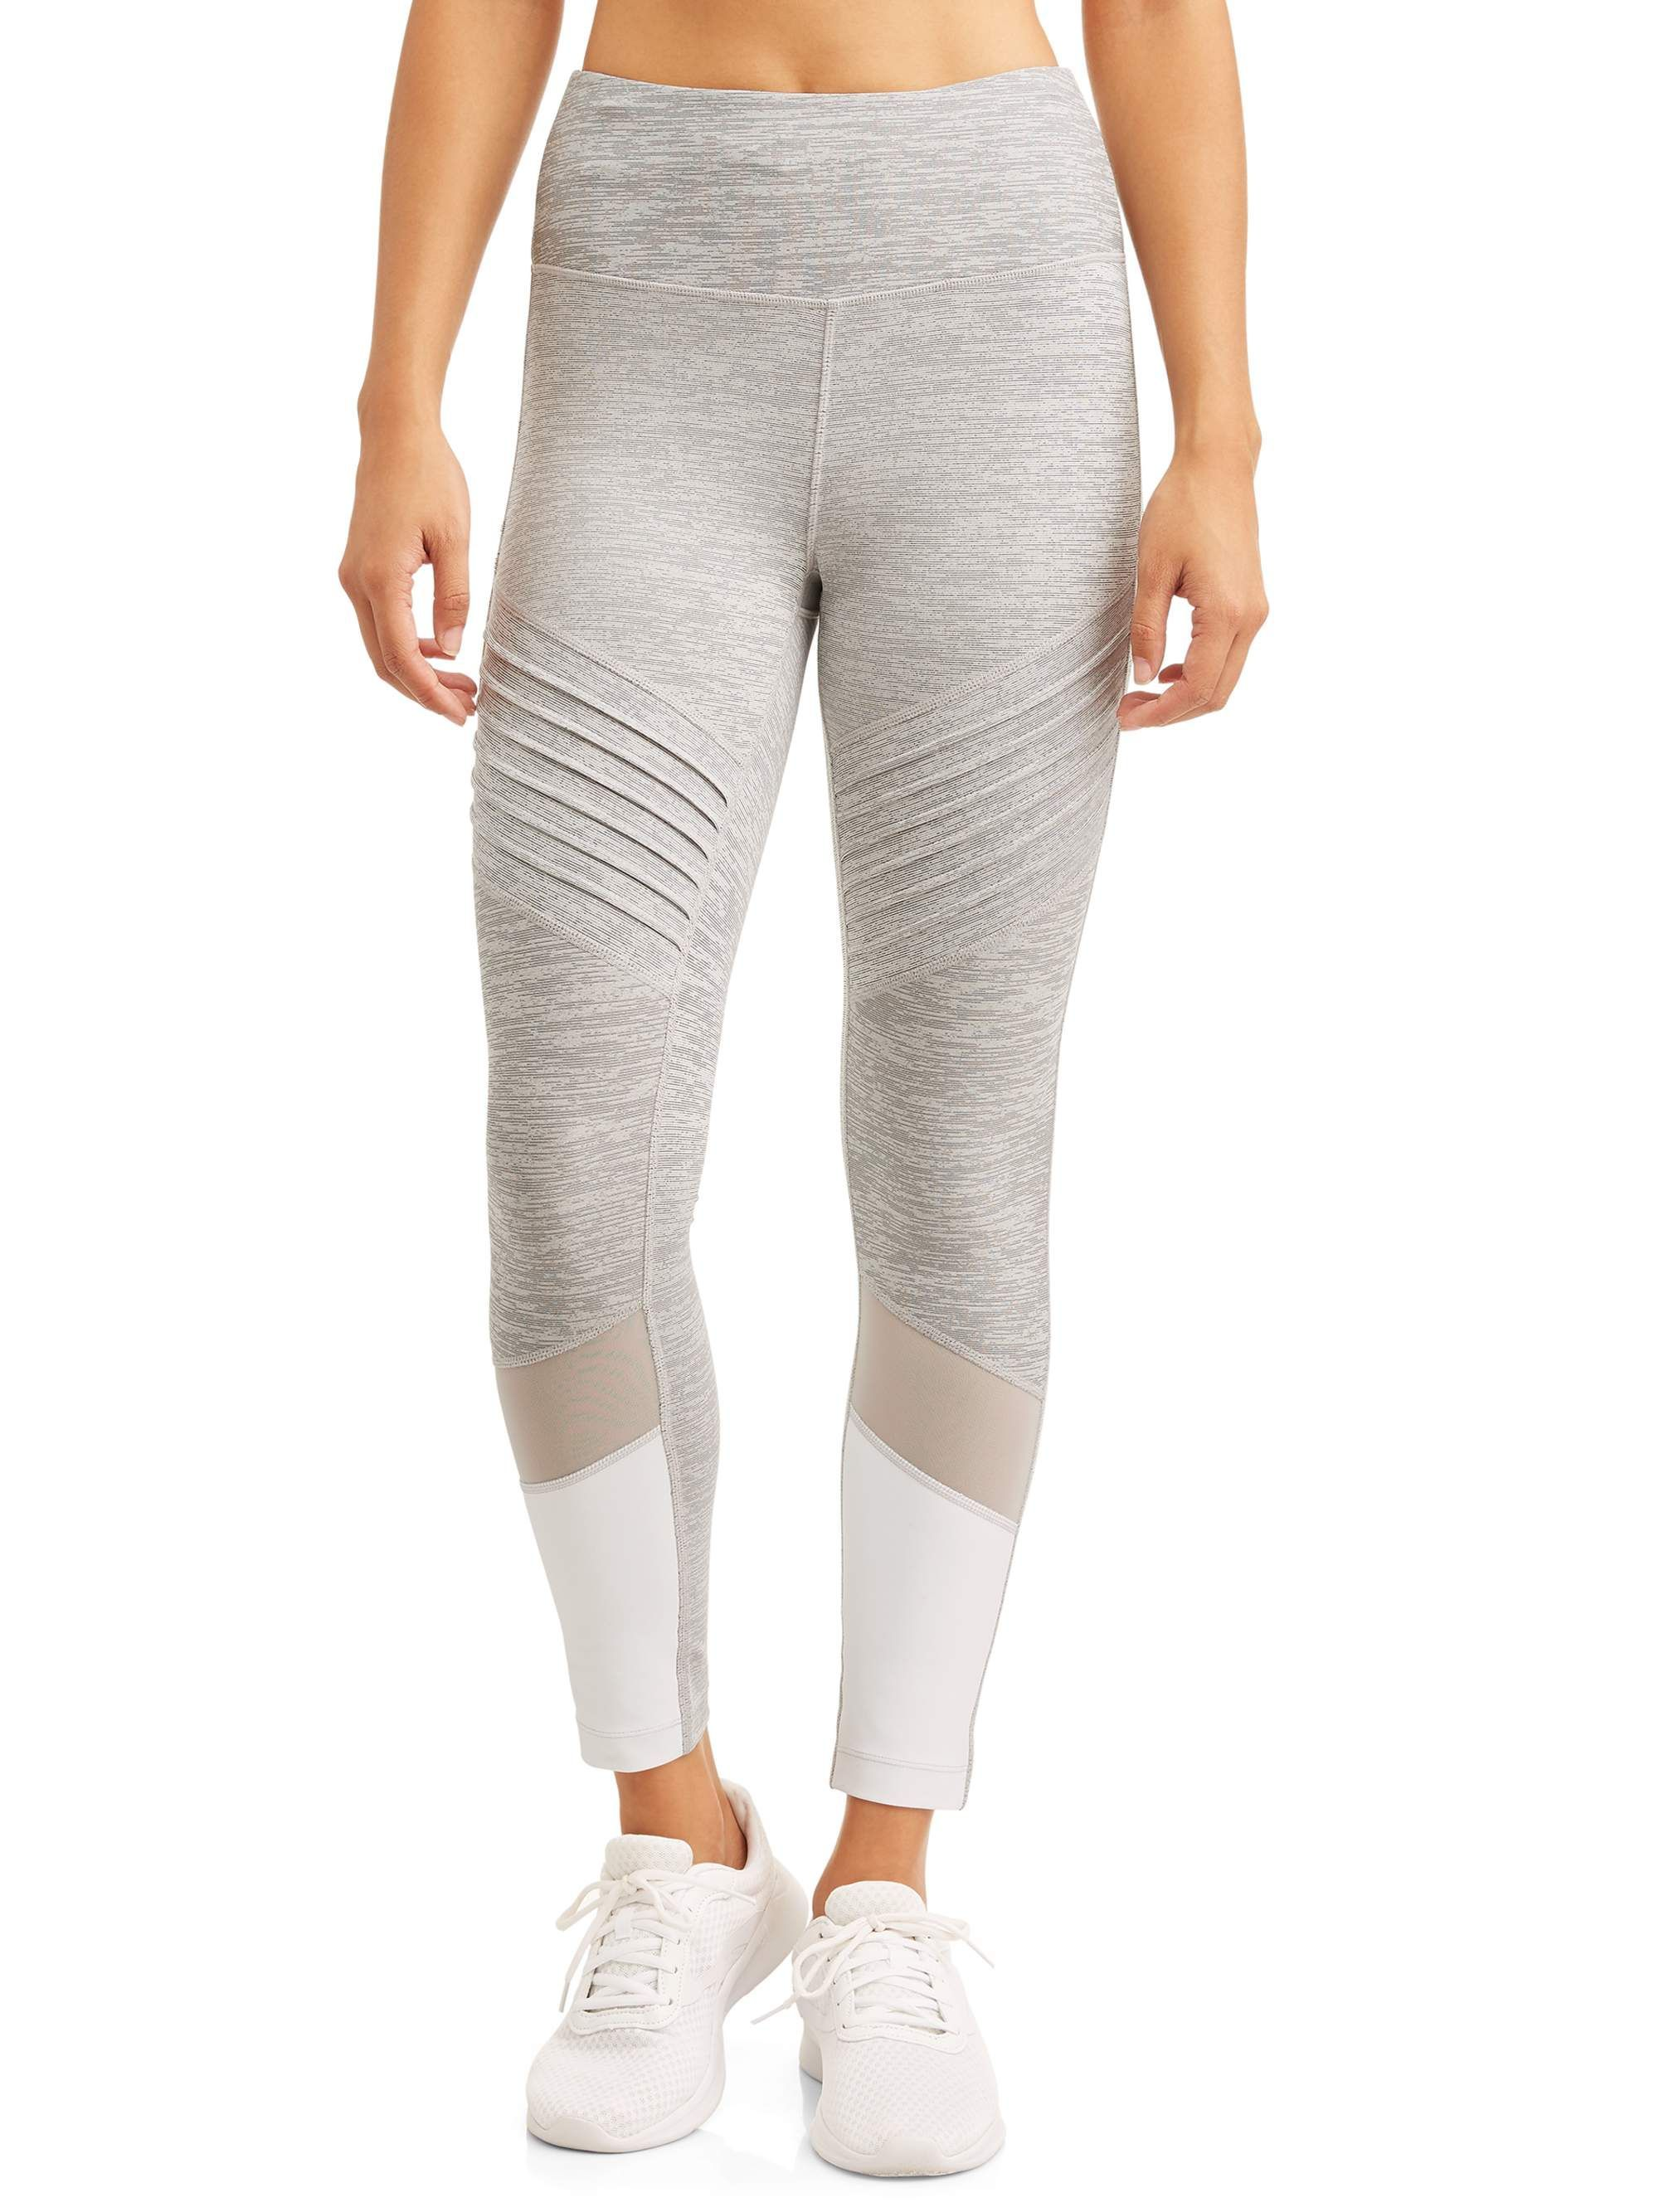 There S A Pair Of Leggings For Every Activity In Your Life Cropped Leggings Legging Active Women [ 2667 x 2000 Pixel ]